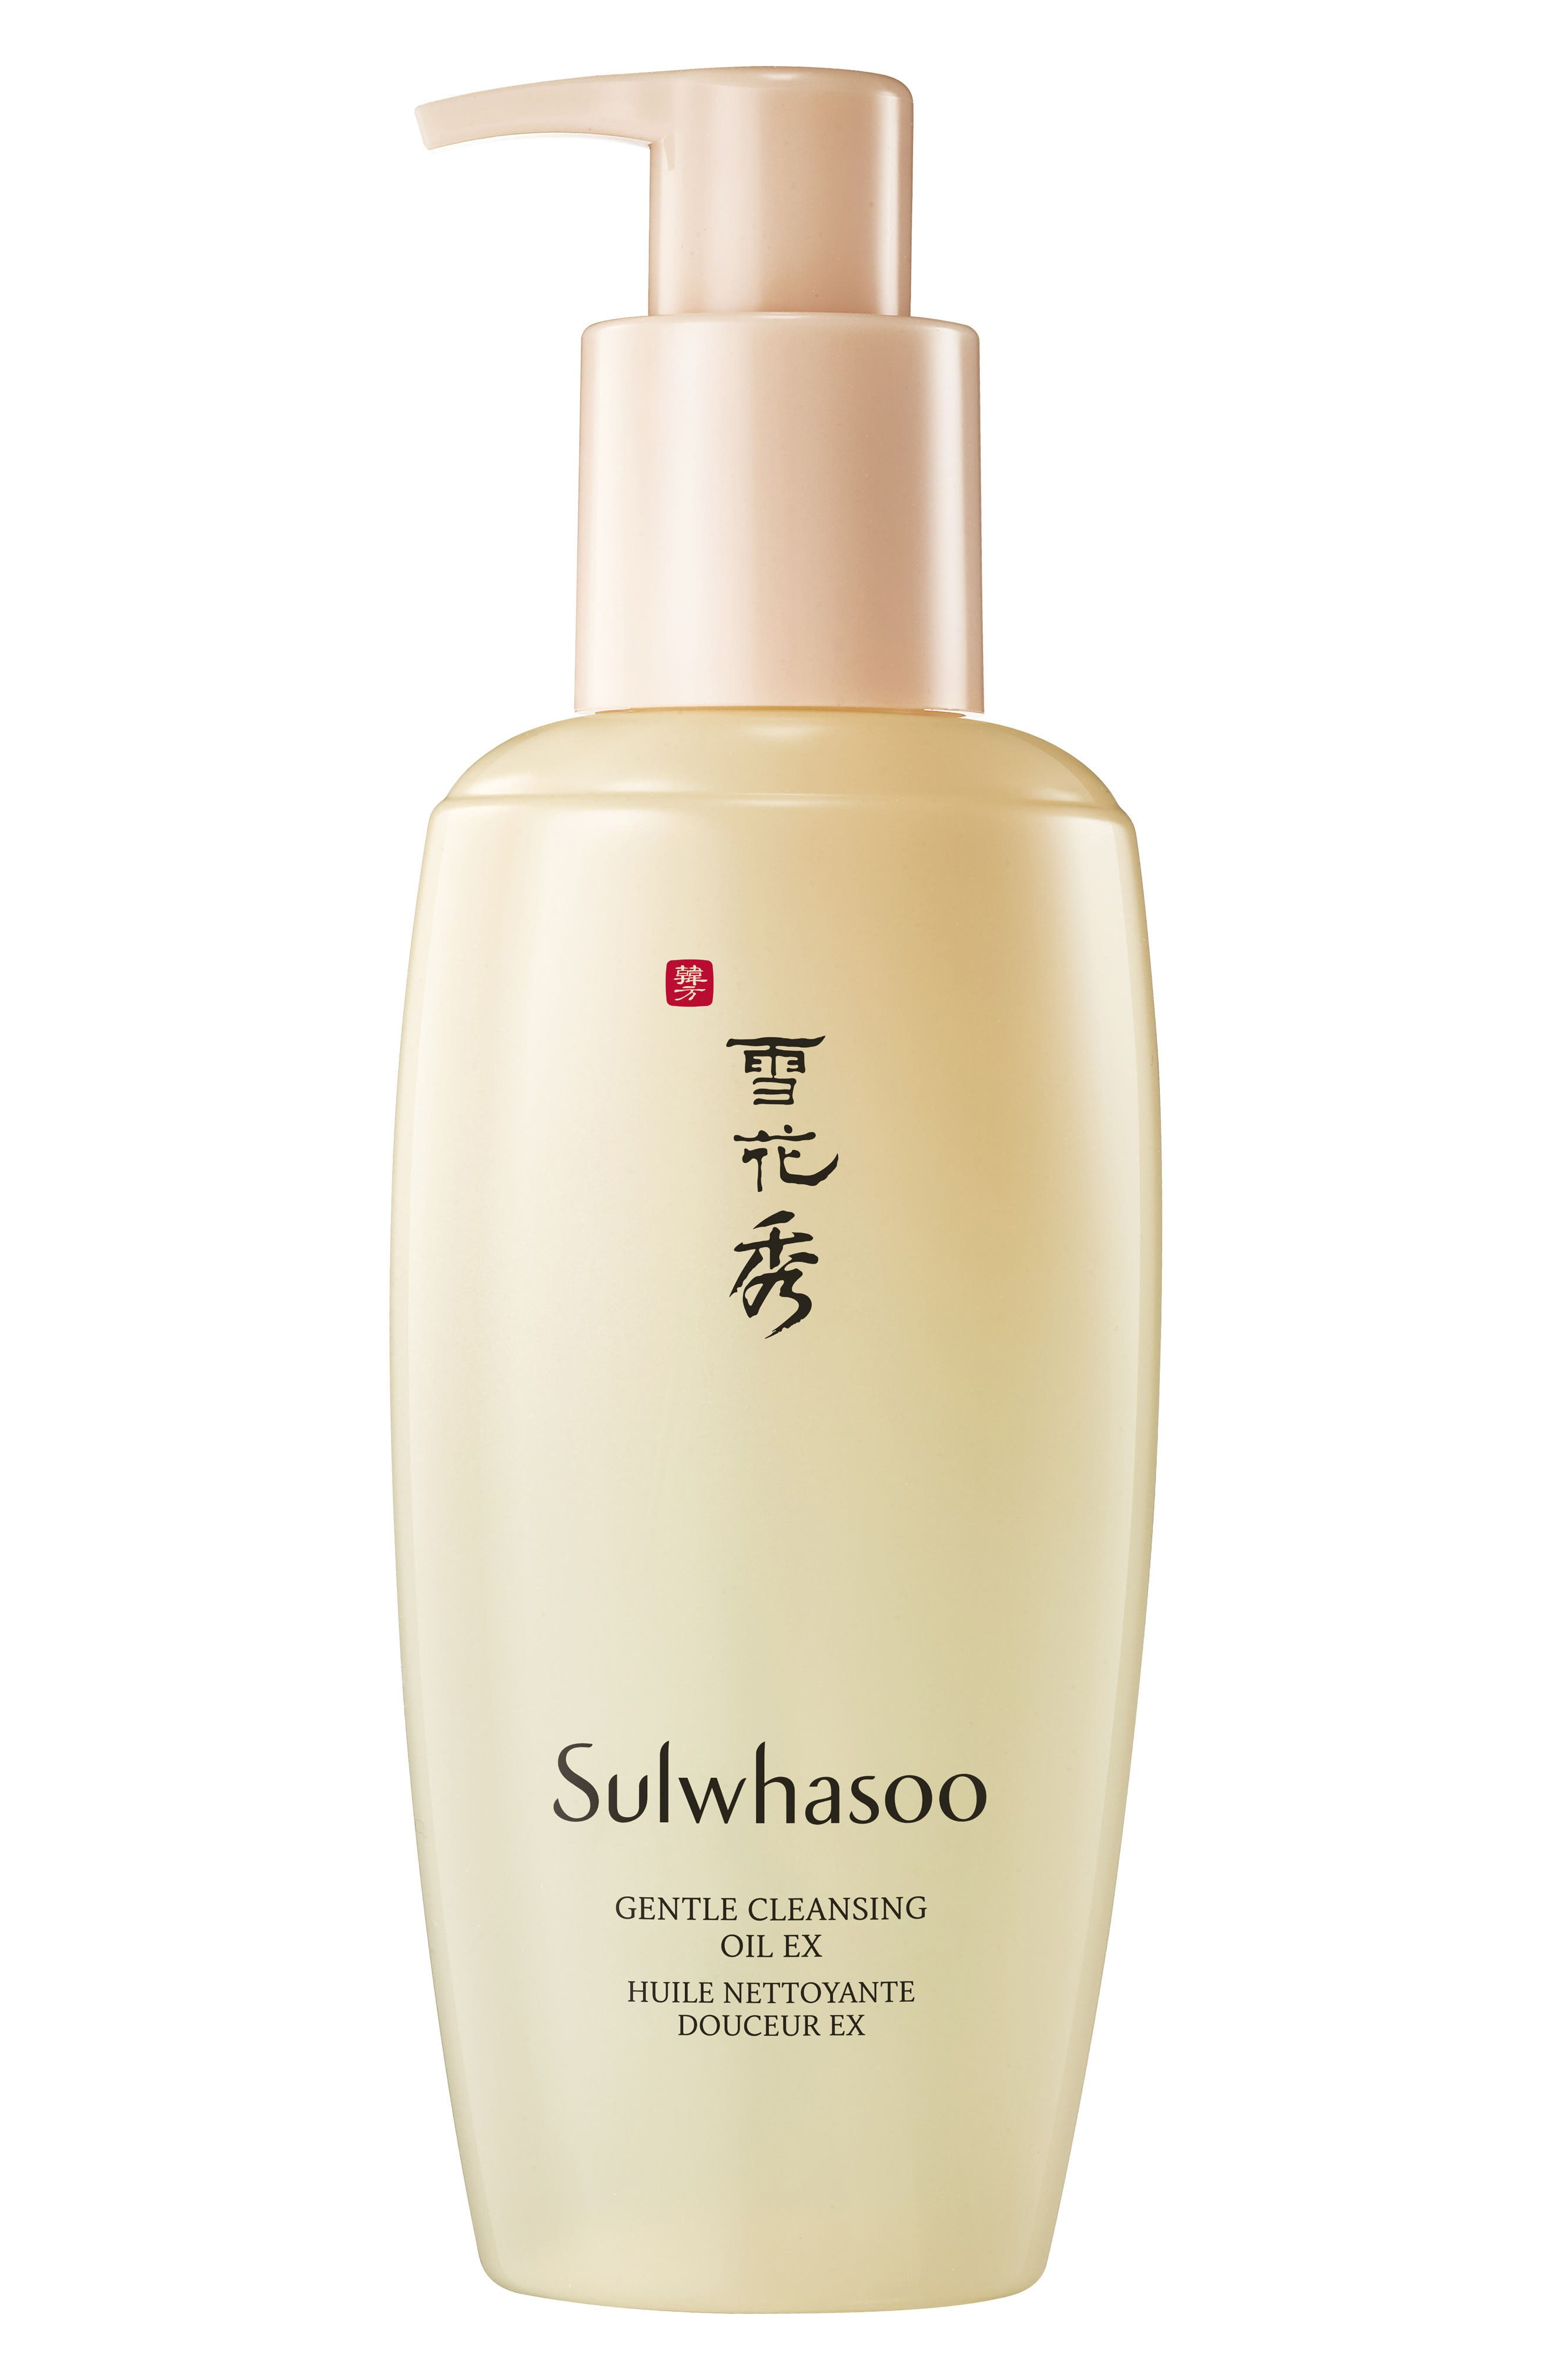 SULWHASOO, Gentle Cleansing Oil EX, Main thumbnail 1, color, NO COLOR